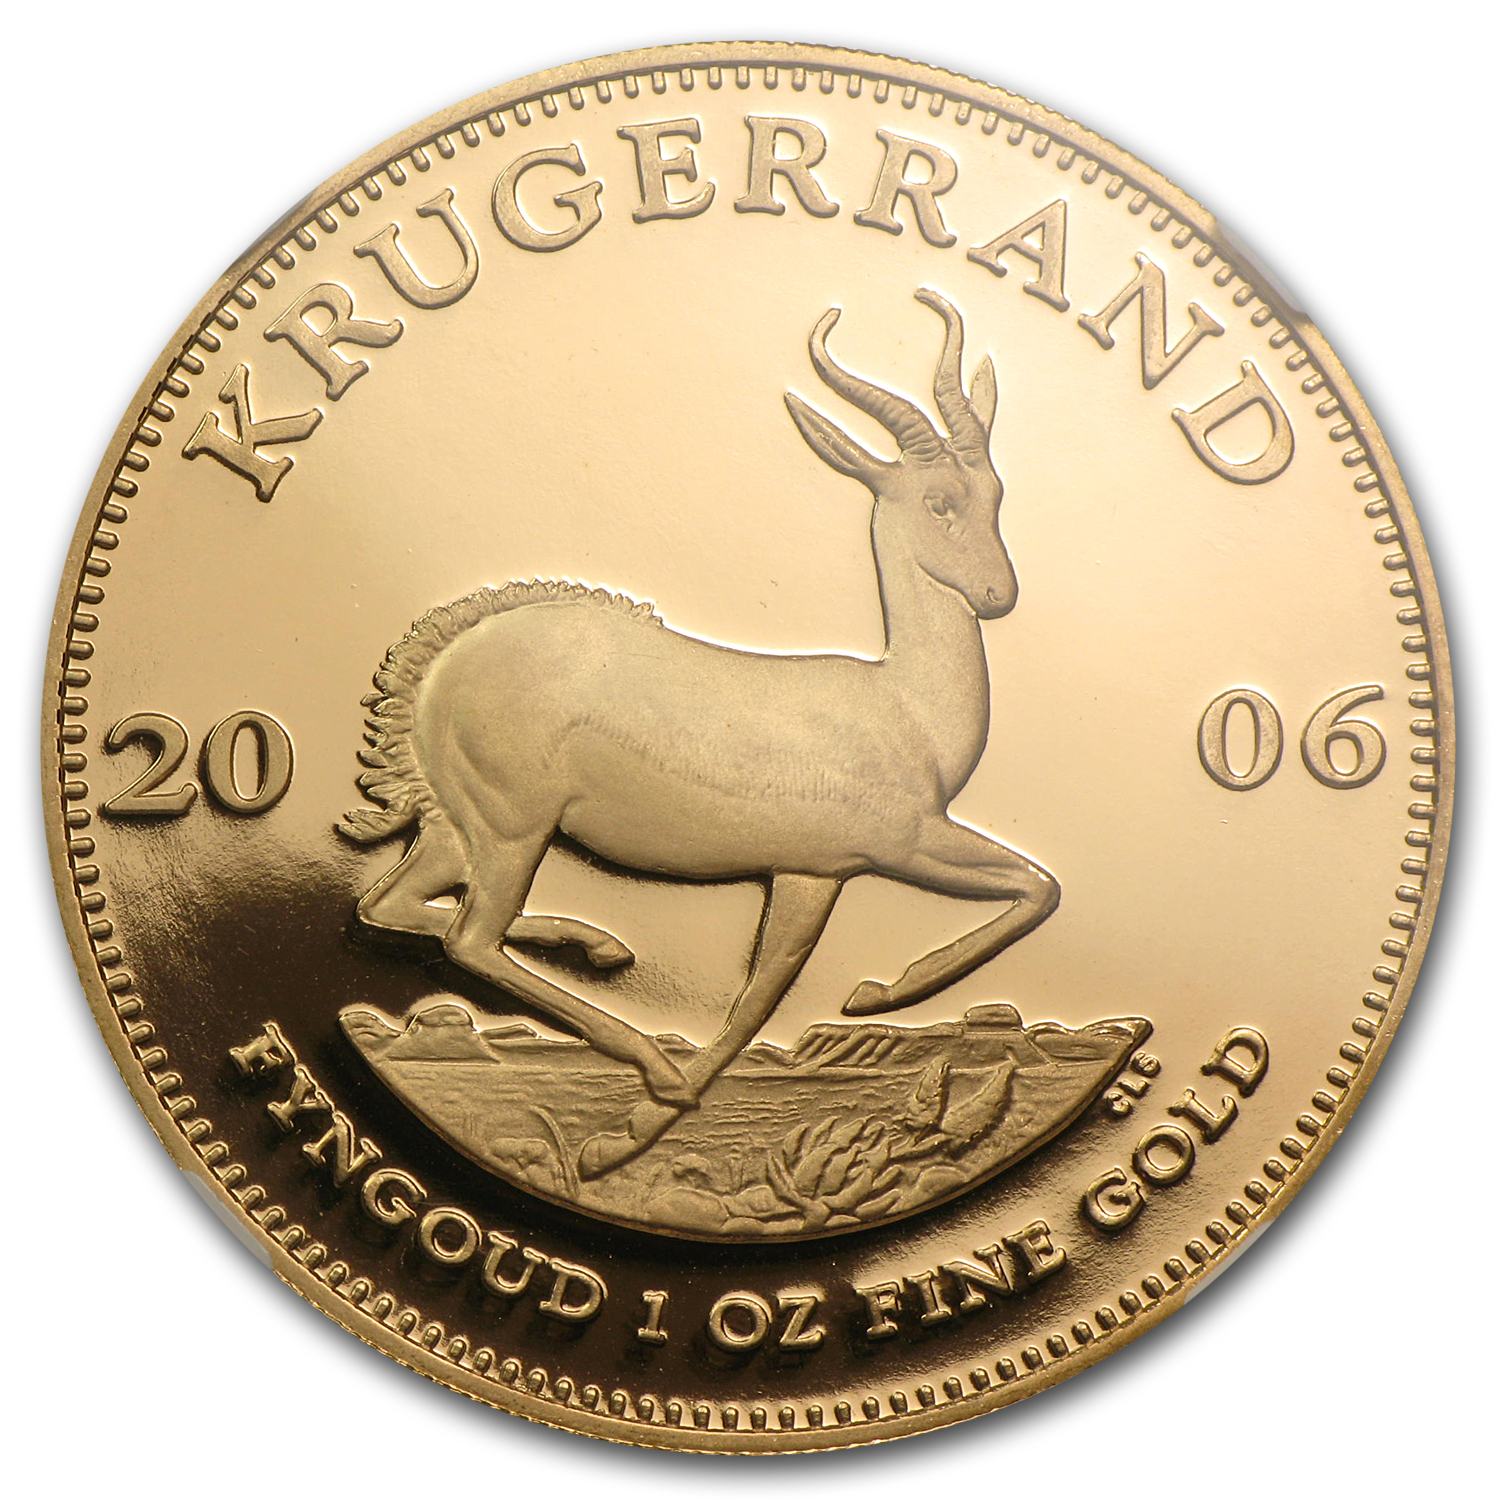 2006 1 oz Gold South African Krugerrand PF-70 NGC